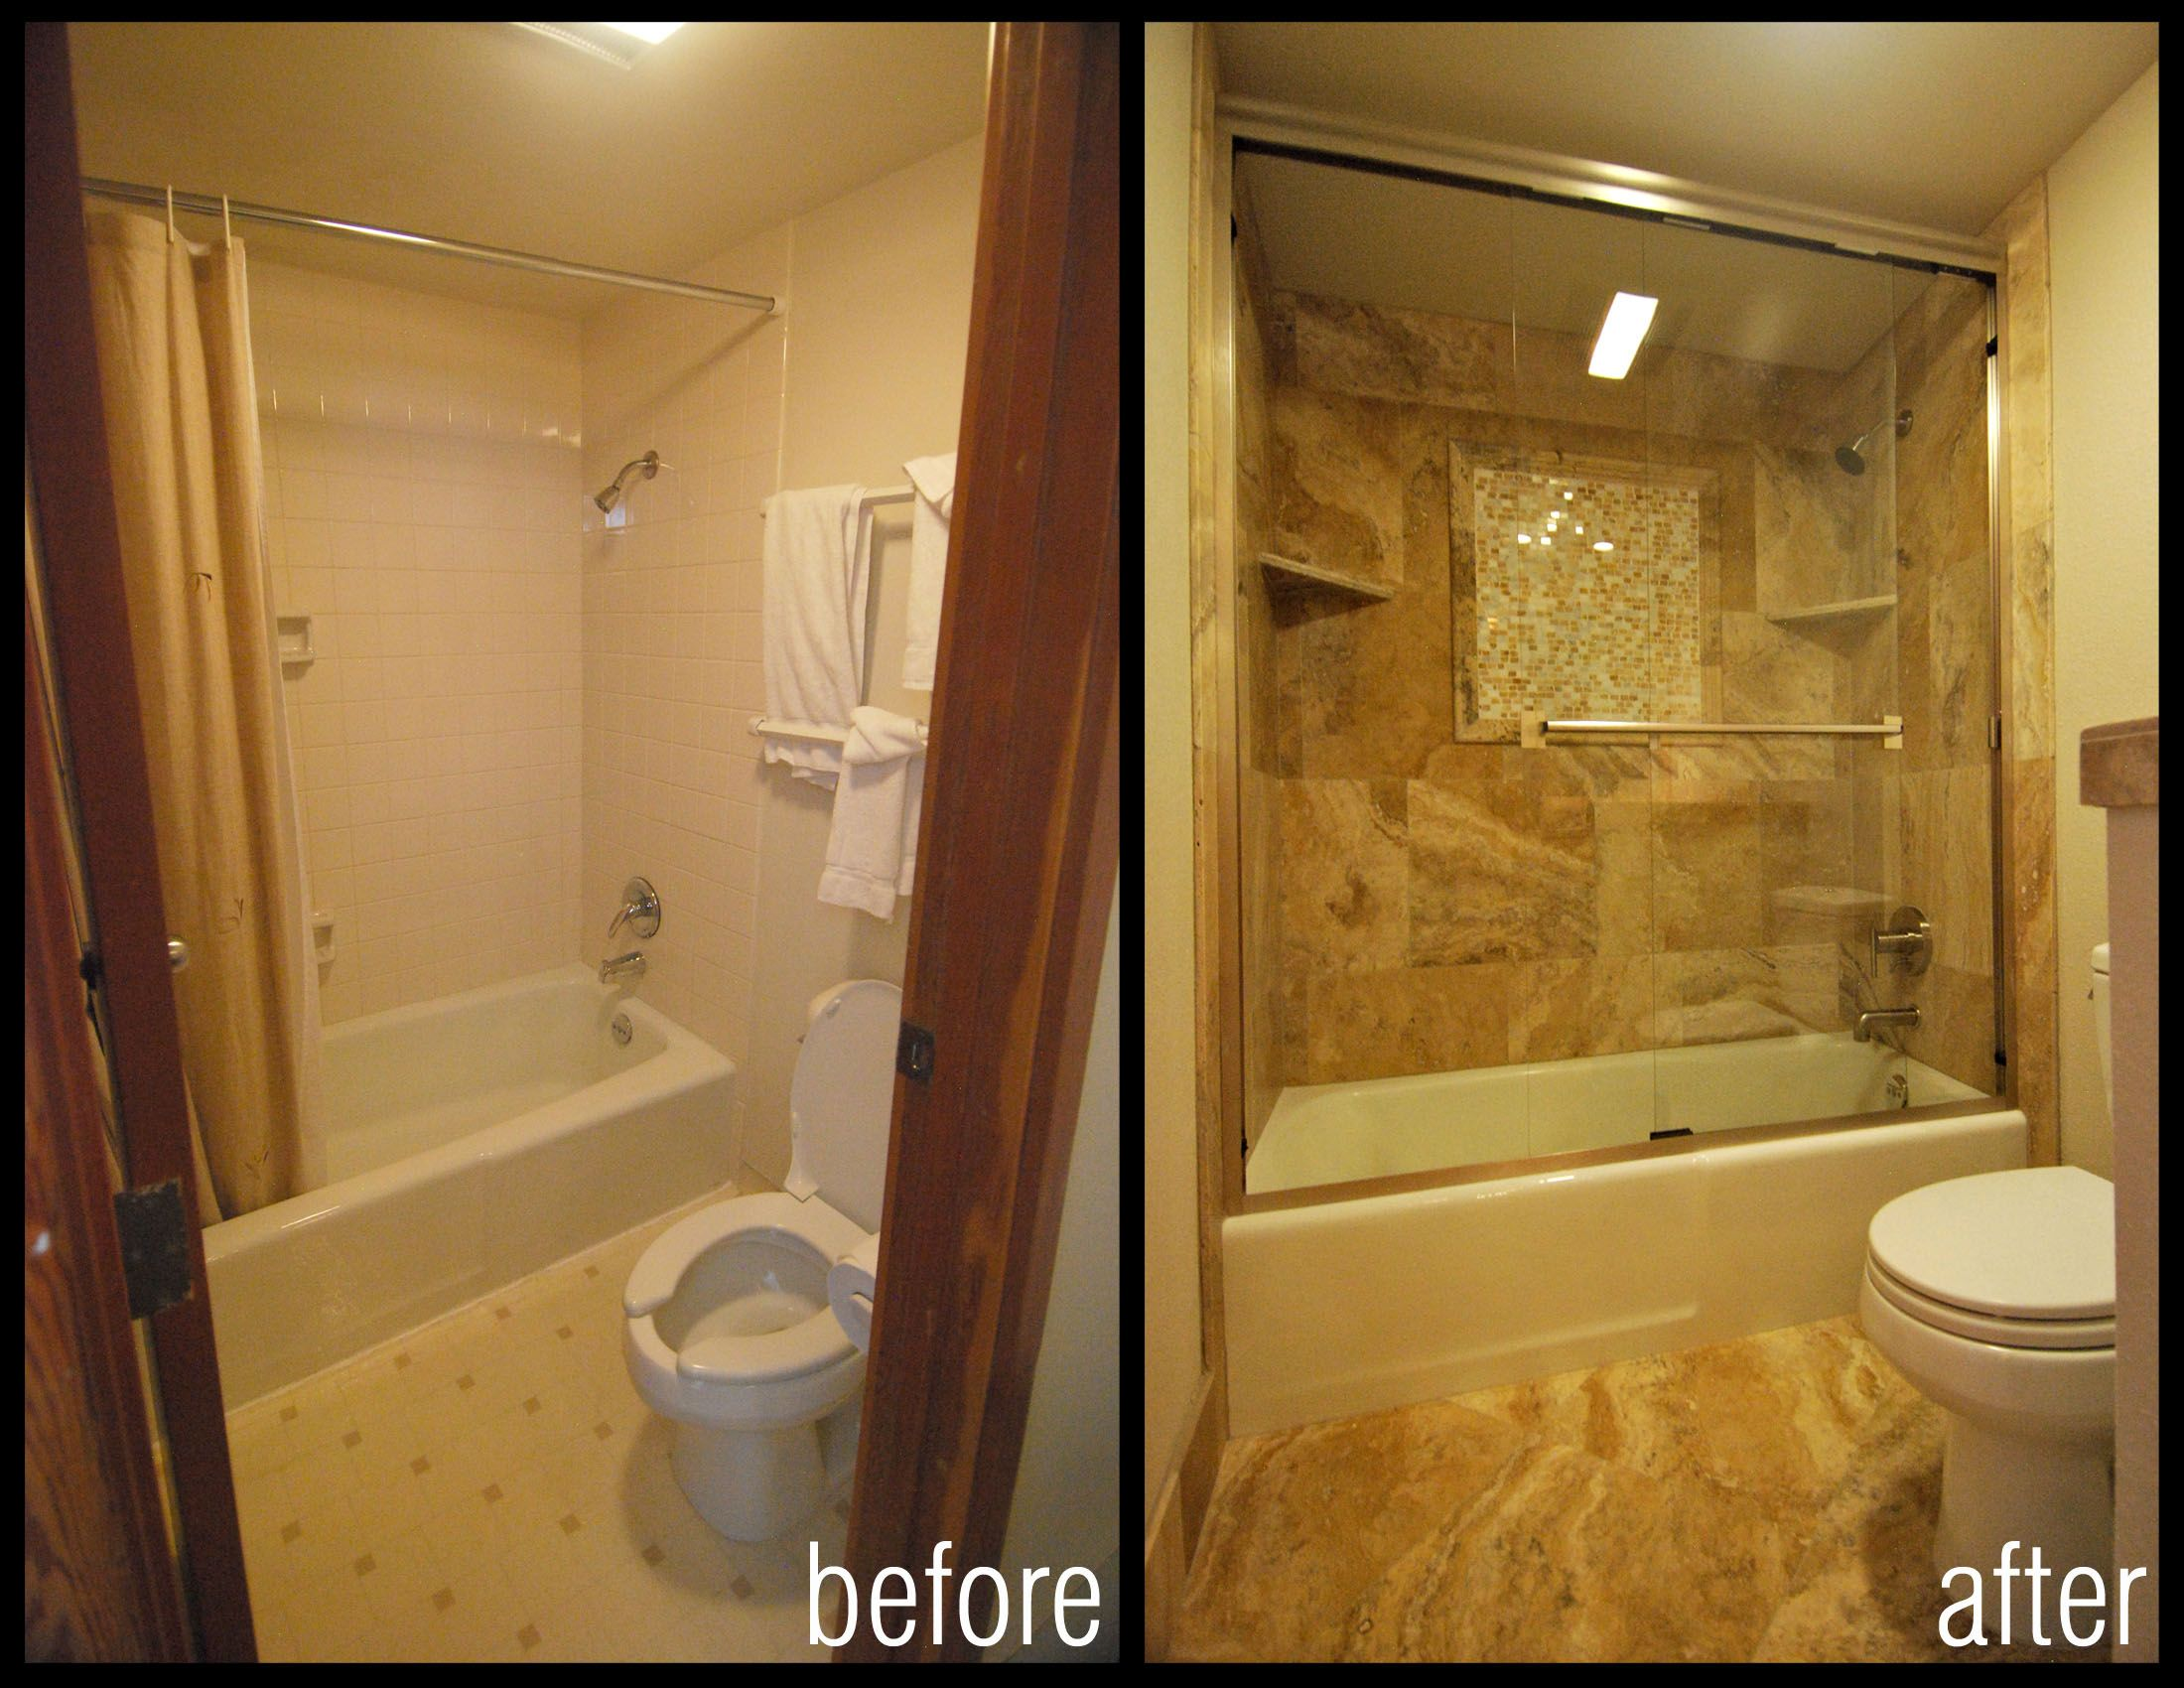 Renovation Ideas Before And After Stunning Before And After Images Of Bathroom Shower Remodels  Condo Design Decoration